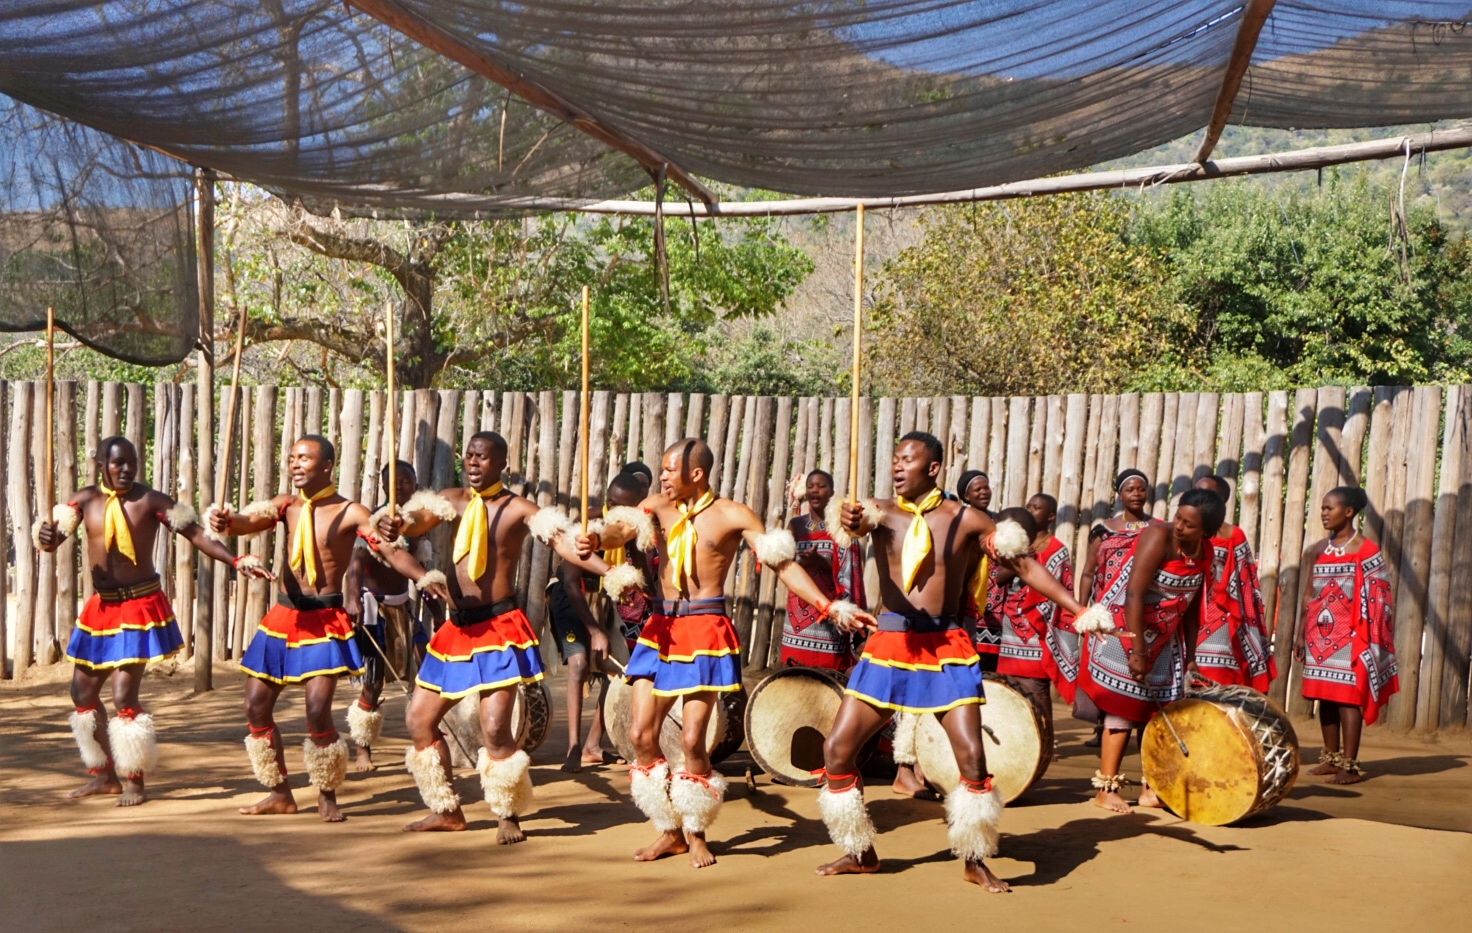 Swazi-ception: the country within a country